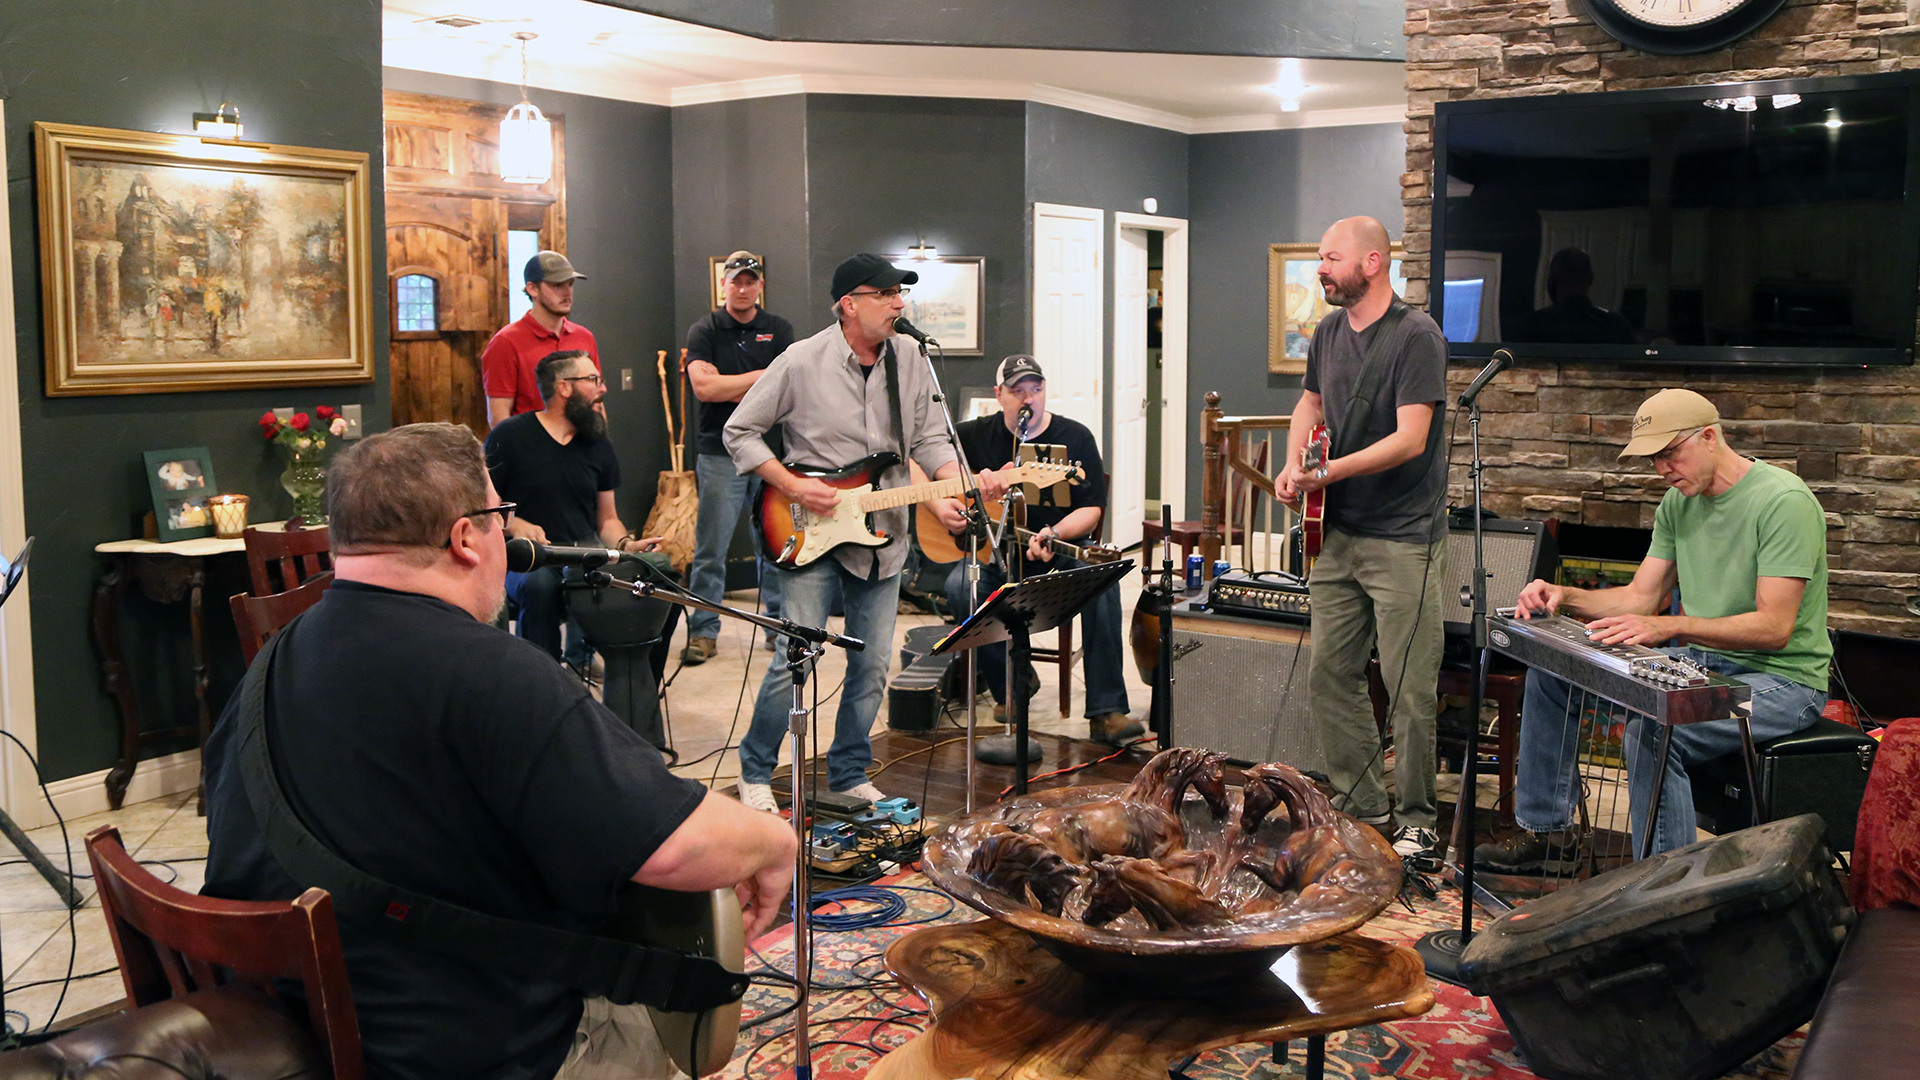 Amarillo musicians teaming to pay tribute to Merle Haggard for second year